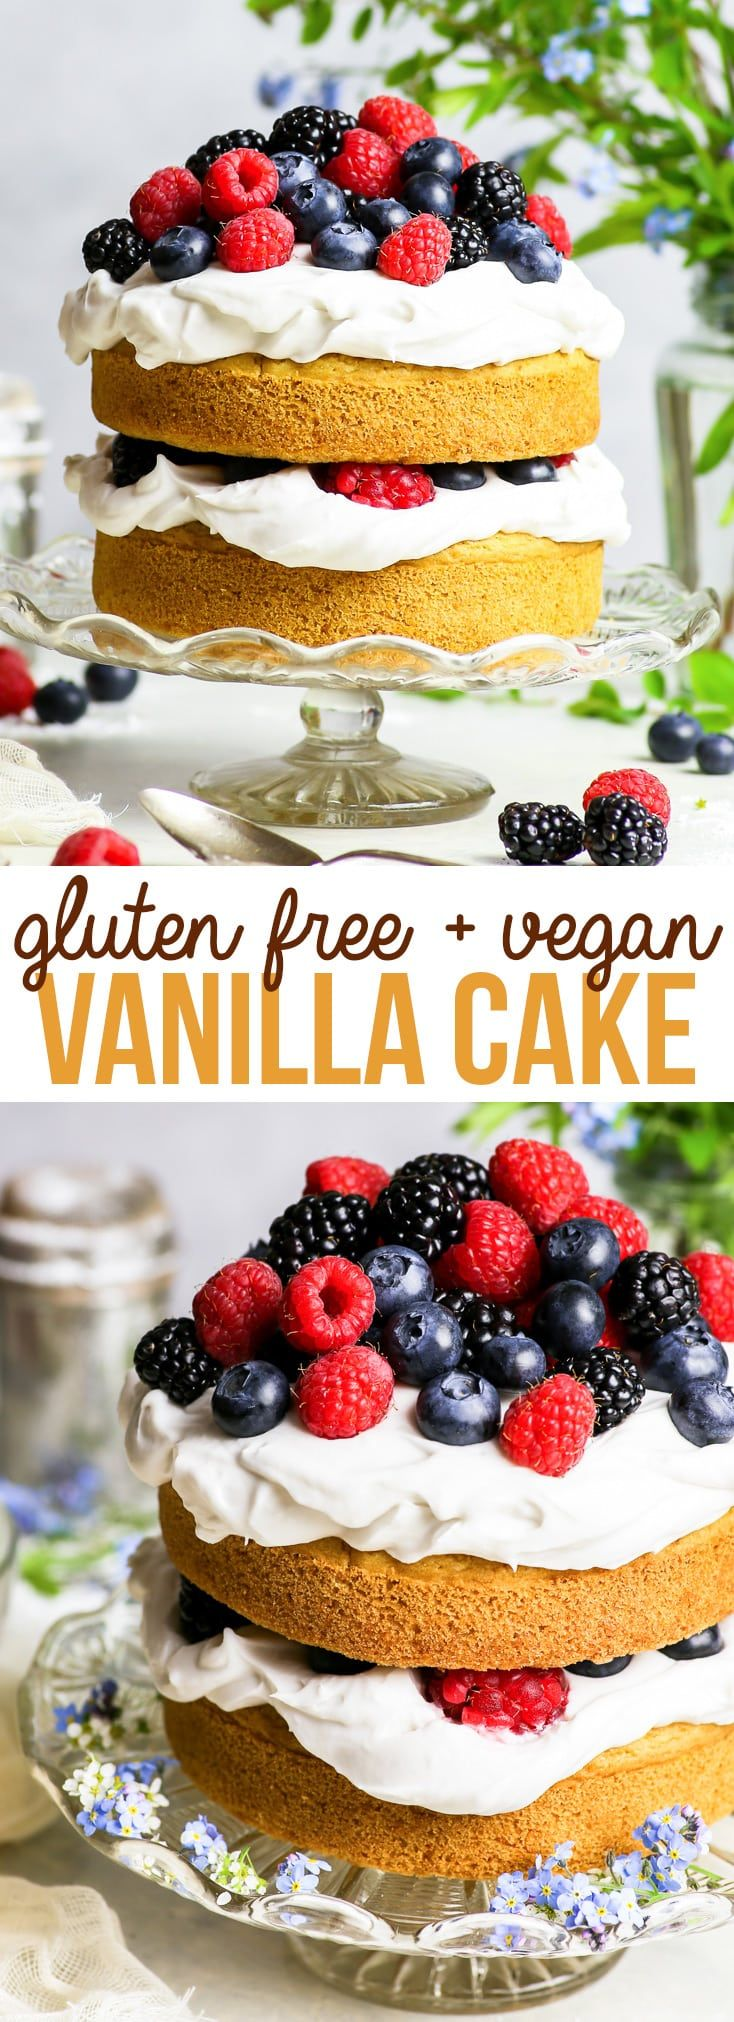 Gluten Free Vegan Vanilla Cake with Summer Berries {gluten, dairy, egg, nut & soy free, vegan} – This gluten free vegan vanilla cake recipe is THE recipe to have on hand if you have any kind of food allergy, or if you follow a vegan lifestyle. With a fluffy, moist sponge cake (no egg substitutes!) and a delicious coconut cream frosting, this recipe is both quick and easy! Gluten free dessert. Dairy free dessert. Vegan dessert. #vegan #glutenfree #dairyfree #dessert #vanilla #cake #food #recipeadrianna rodriguez